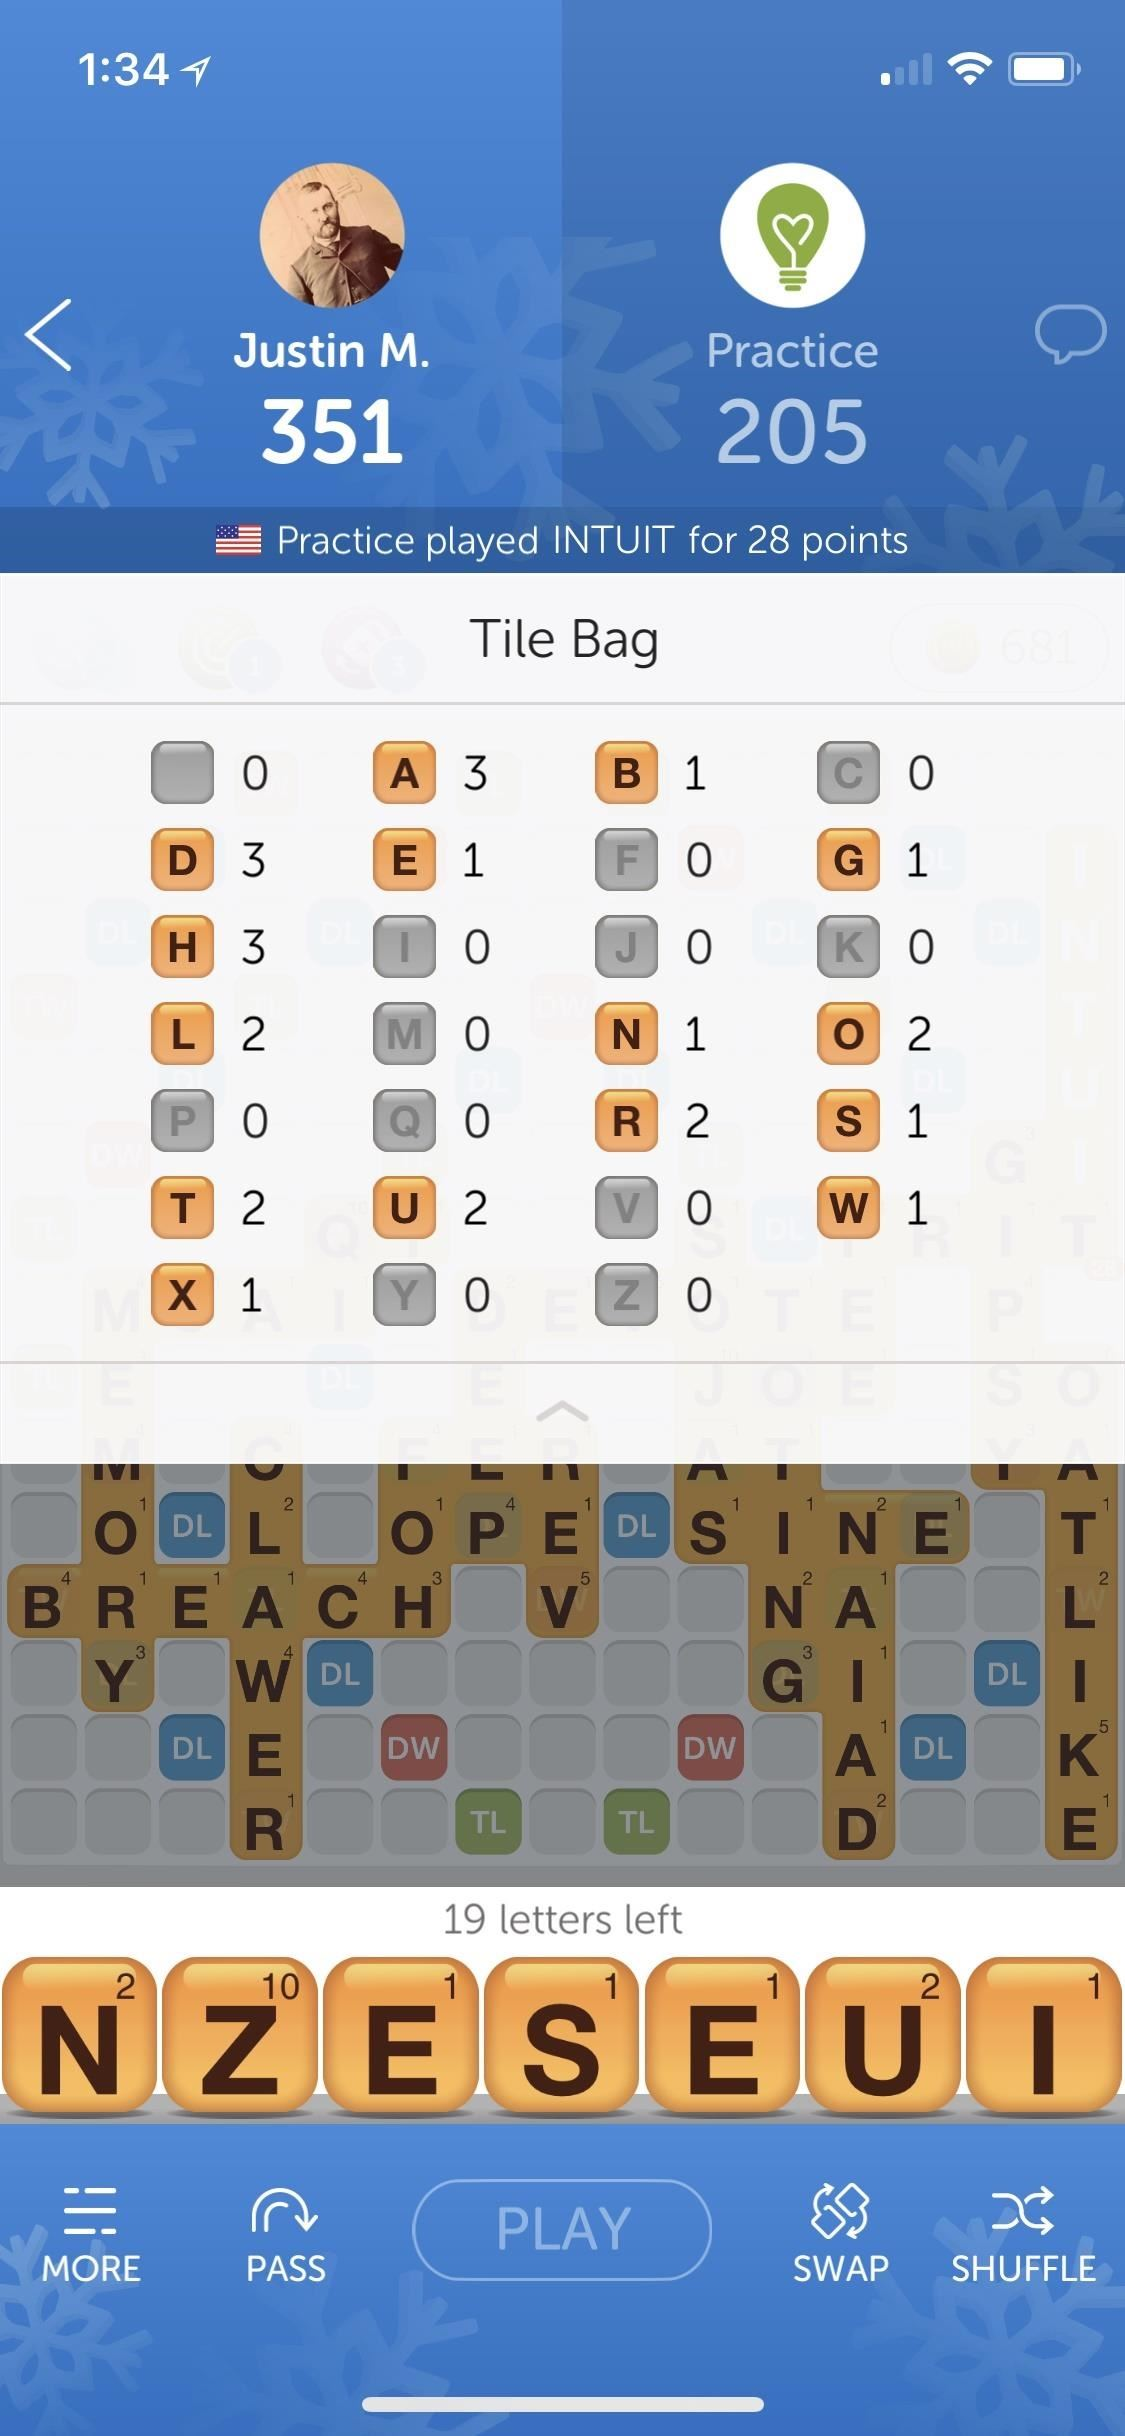 How to Use the Remaining Tiles Bag to Score Big in Words with Friends